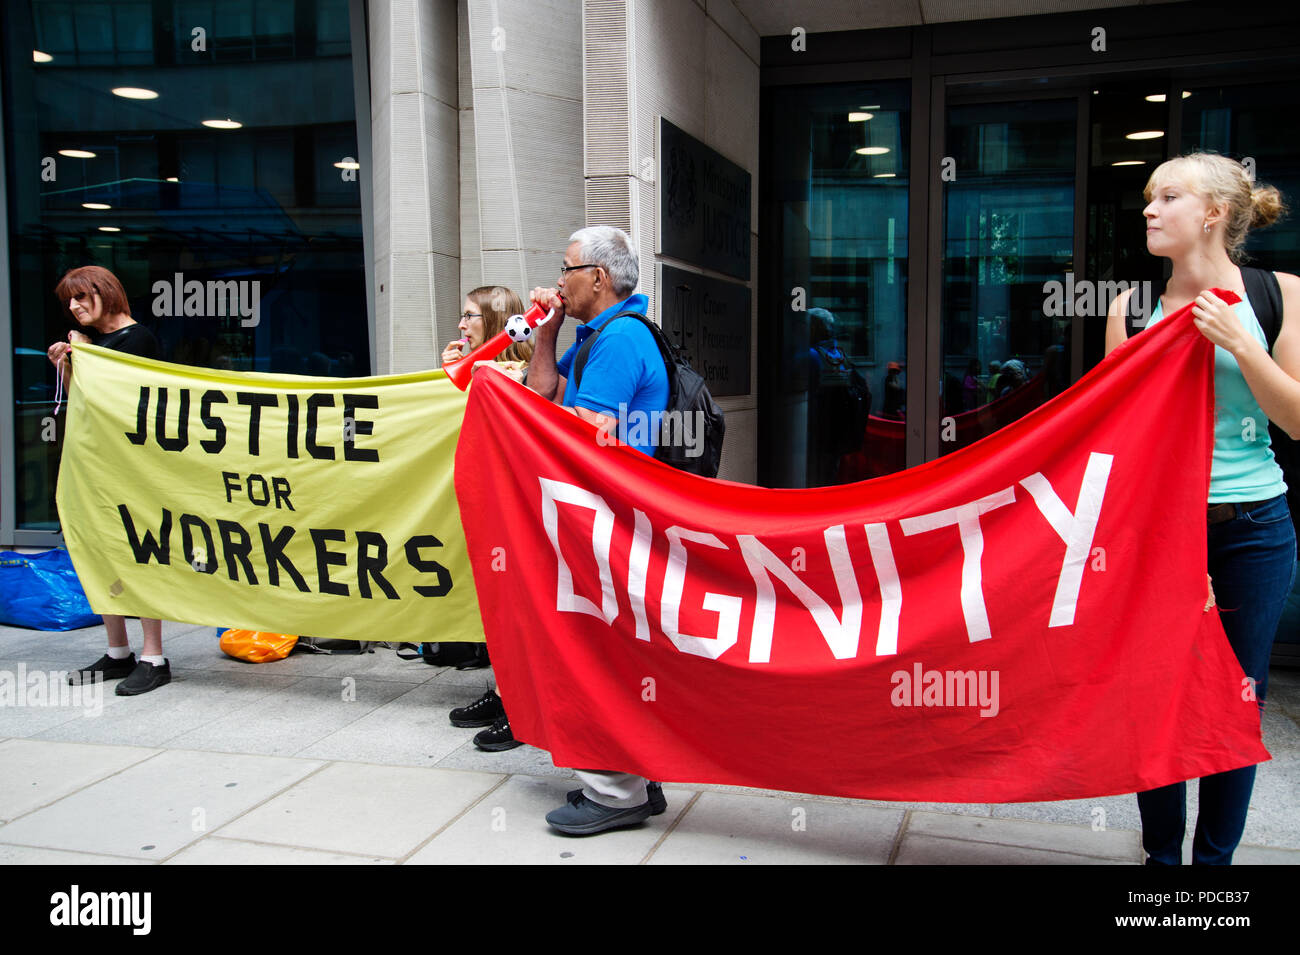 London, UK. 8th August, 2018. Ministry of Justice, Petty France, London. Cleaners from the United Voices of the World Union strike for three days demanding they be paid the London Living Wage of £10.20 an hour instead of the minimum wage of £7.83 that they currently get. Credit: Jenny Matthews/Alamy Live News - Stock Image